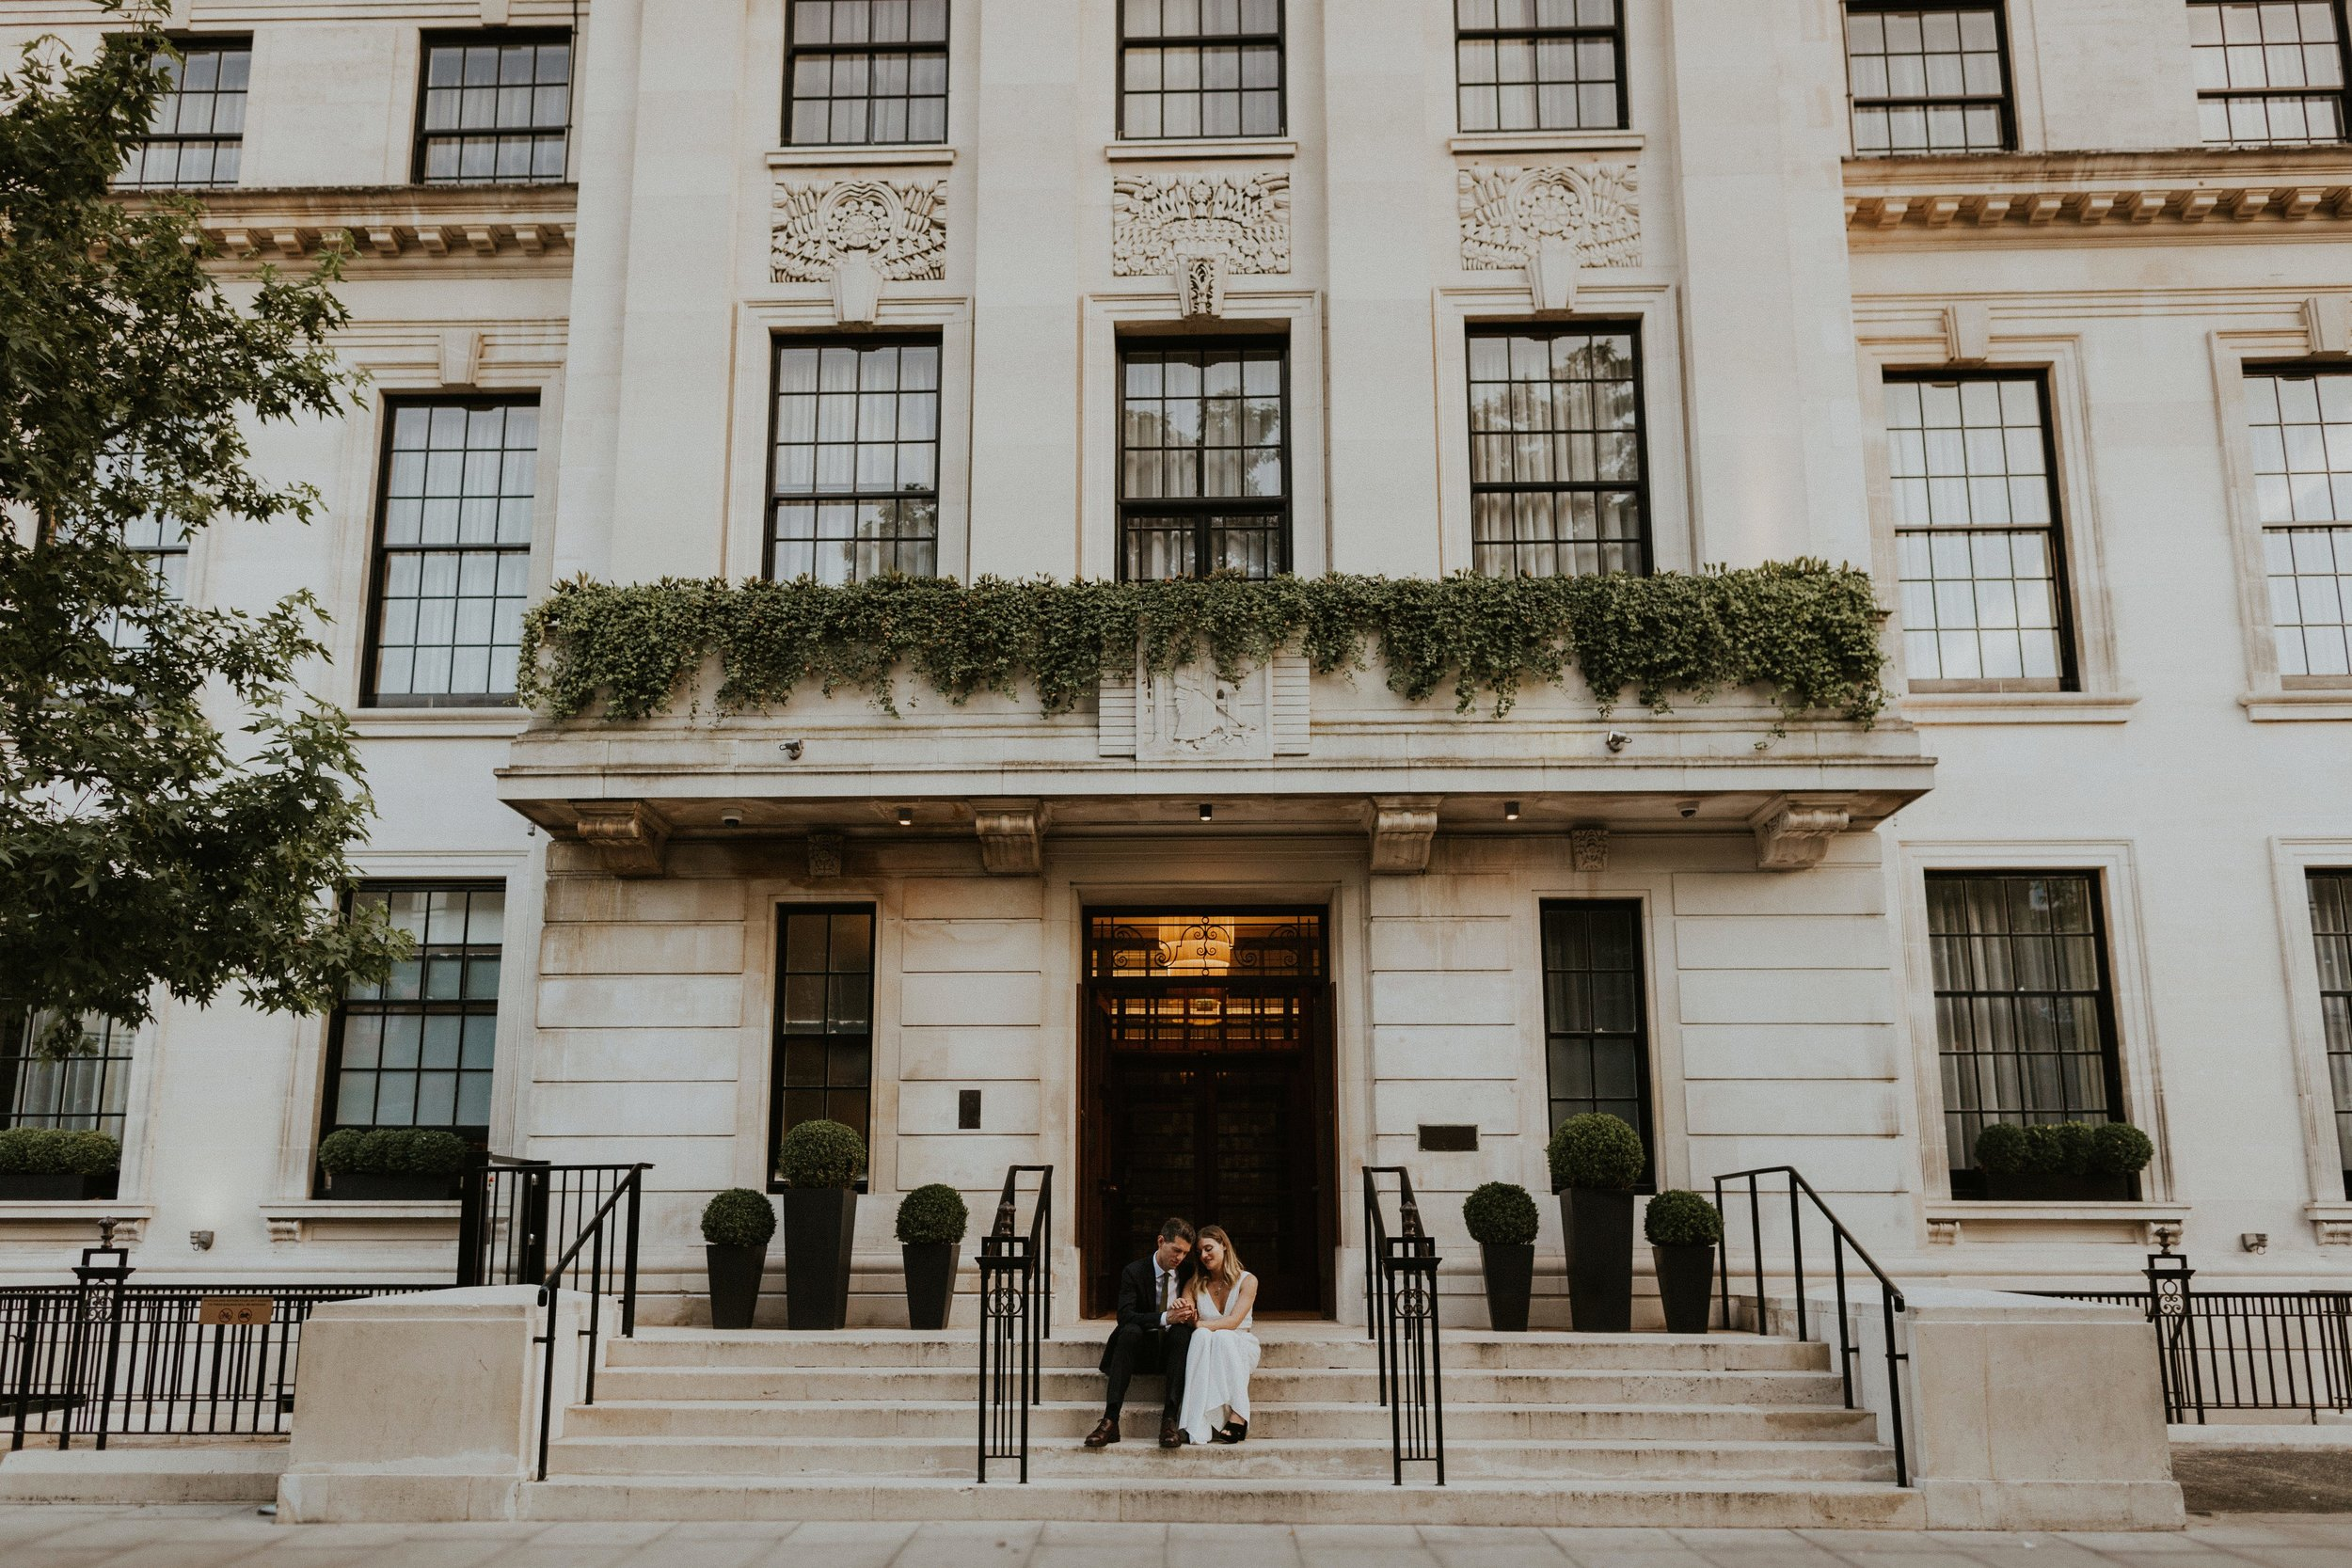 town hall hotel wedding london by the curries wedding photographers07.jpg